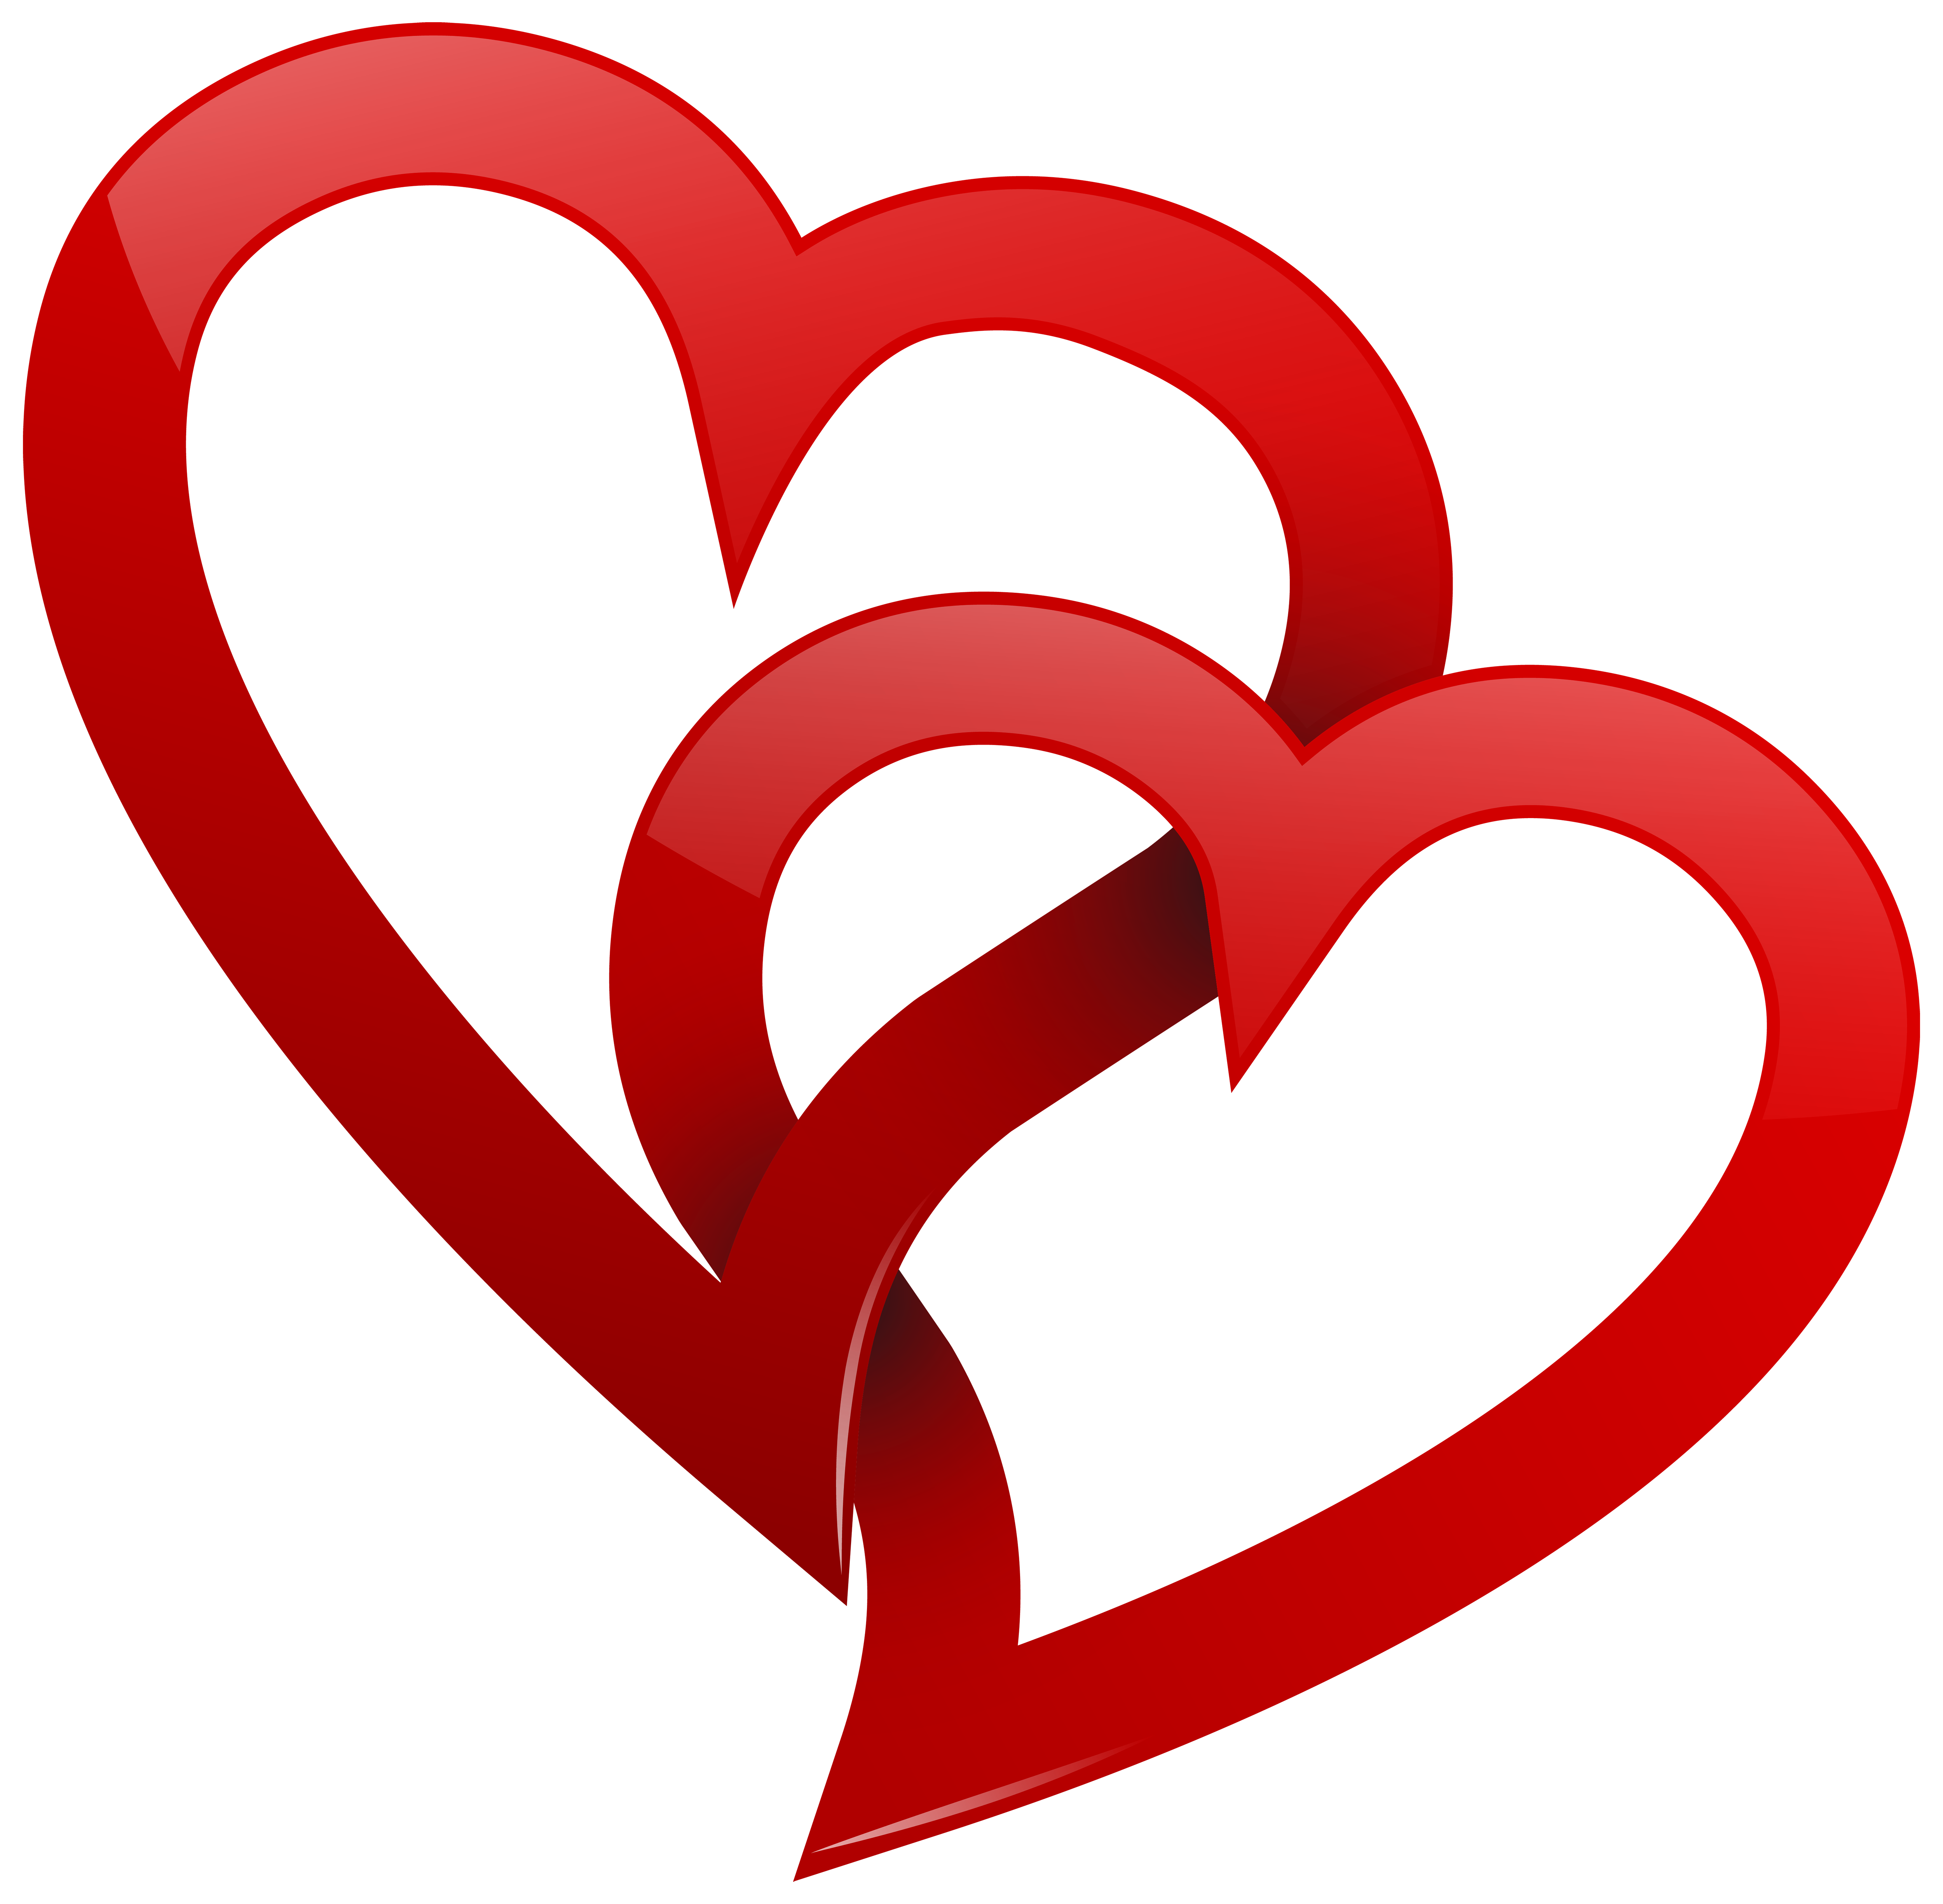 Two Red Hearts PNG Clipart Best WEB Clipart Clip art